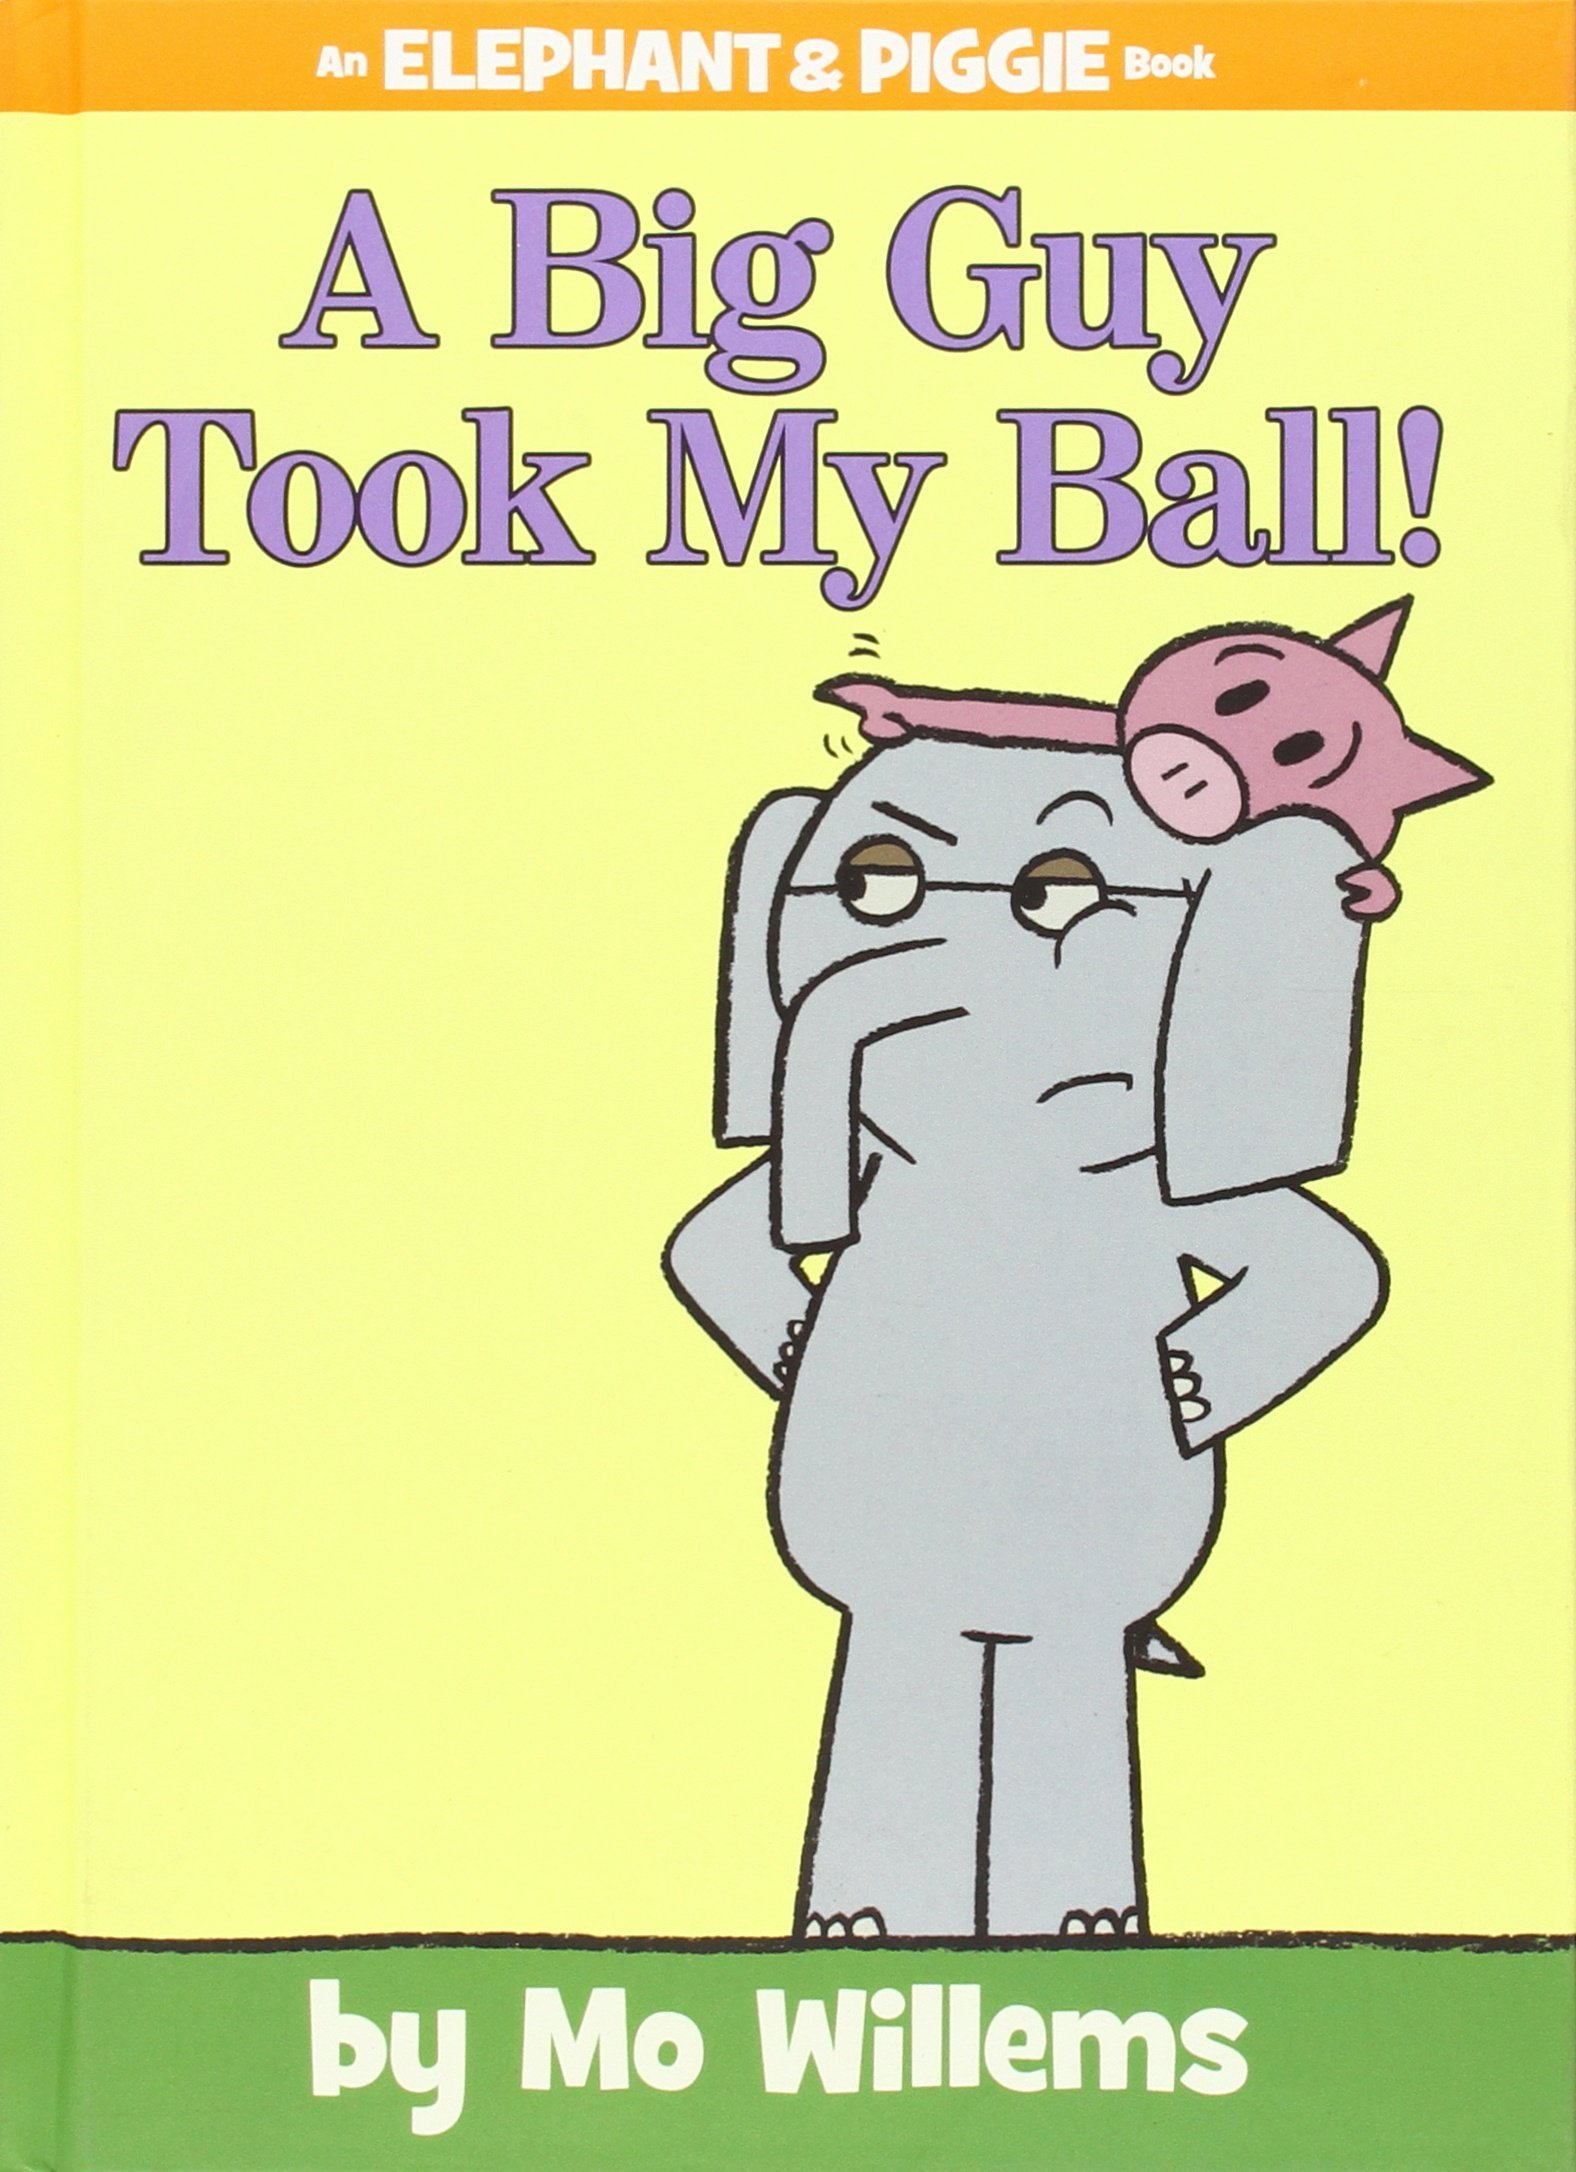 A Big Guy Took My Ball by Mo WIllems